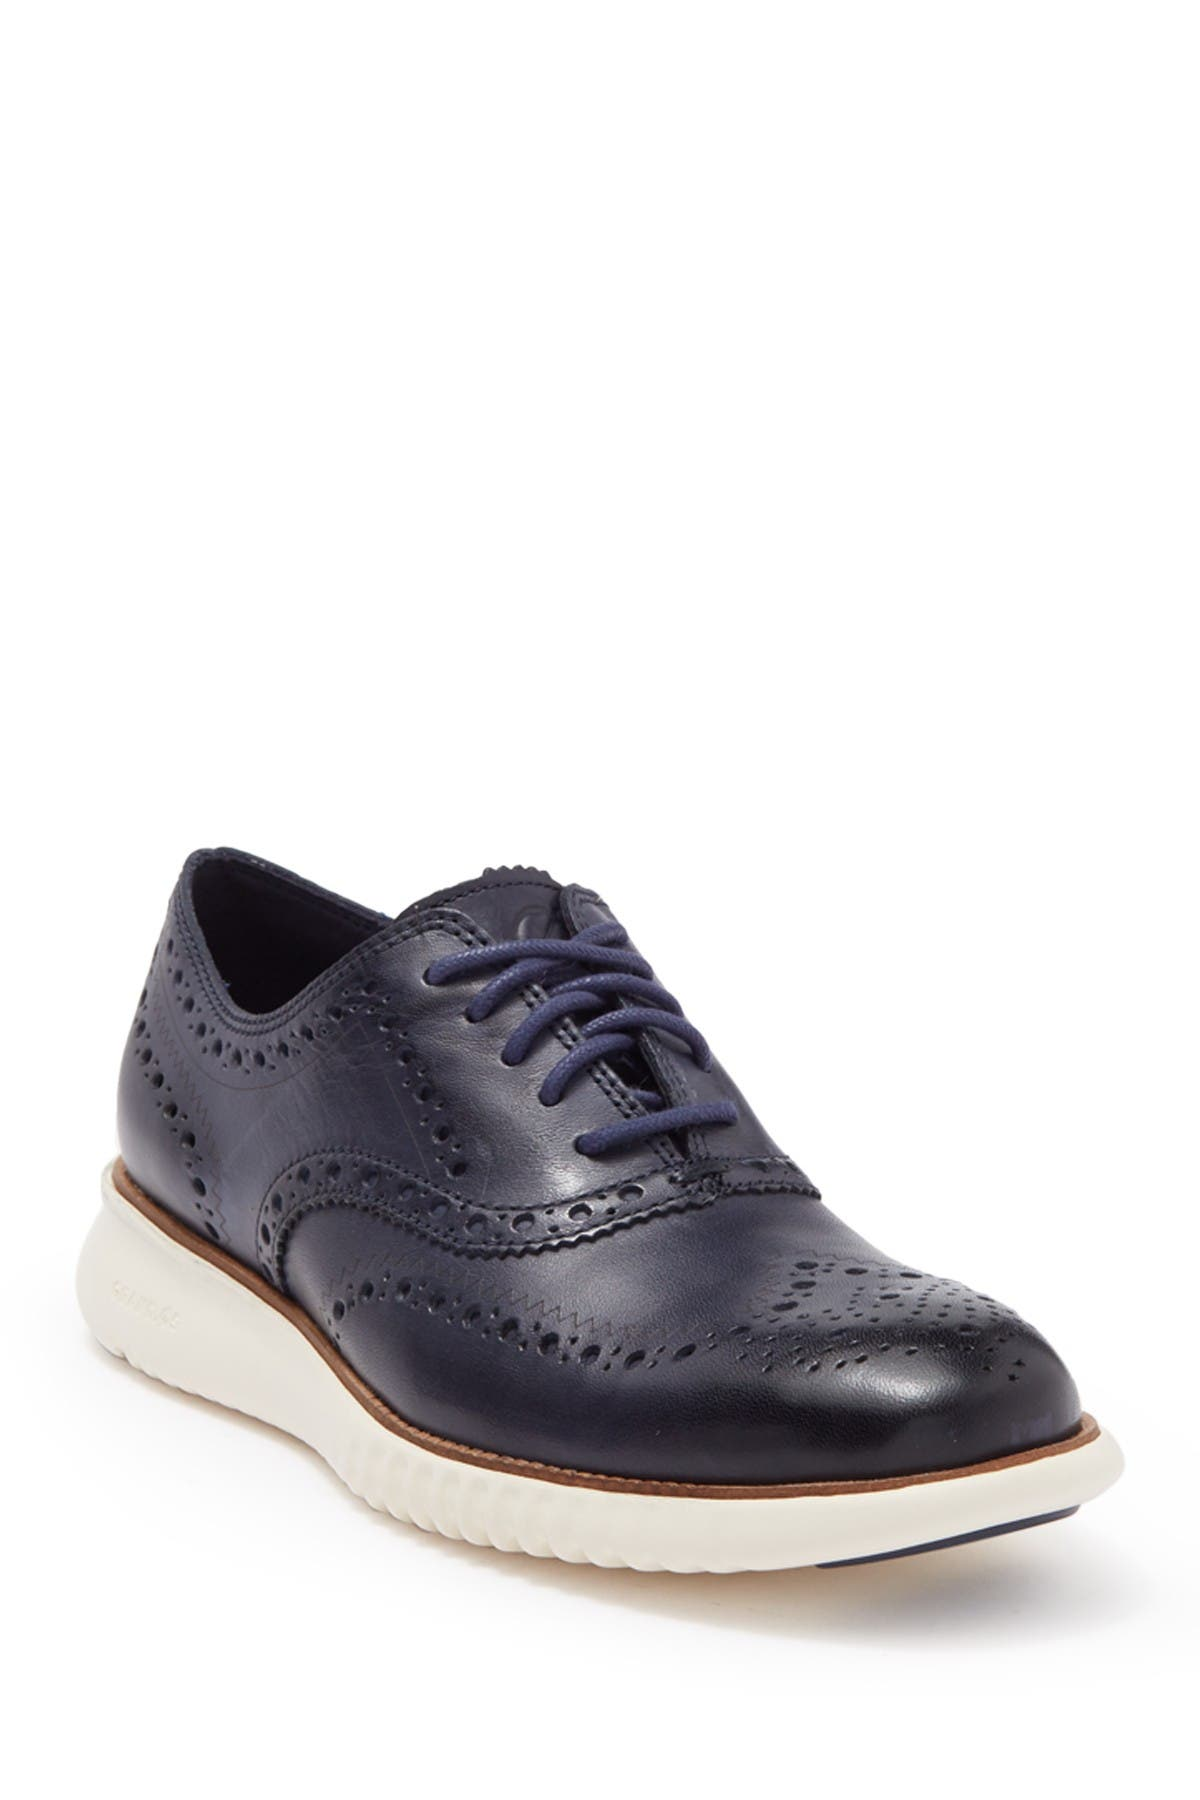 Image of Cole Haan Zerogrand Wingtip Brogue Oxford